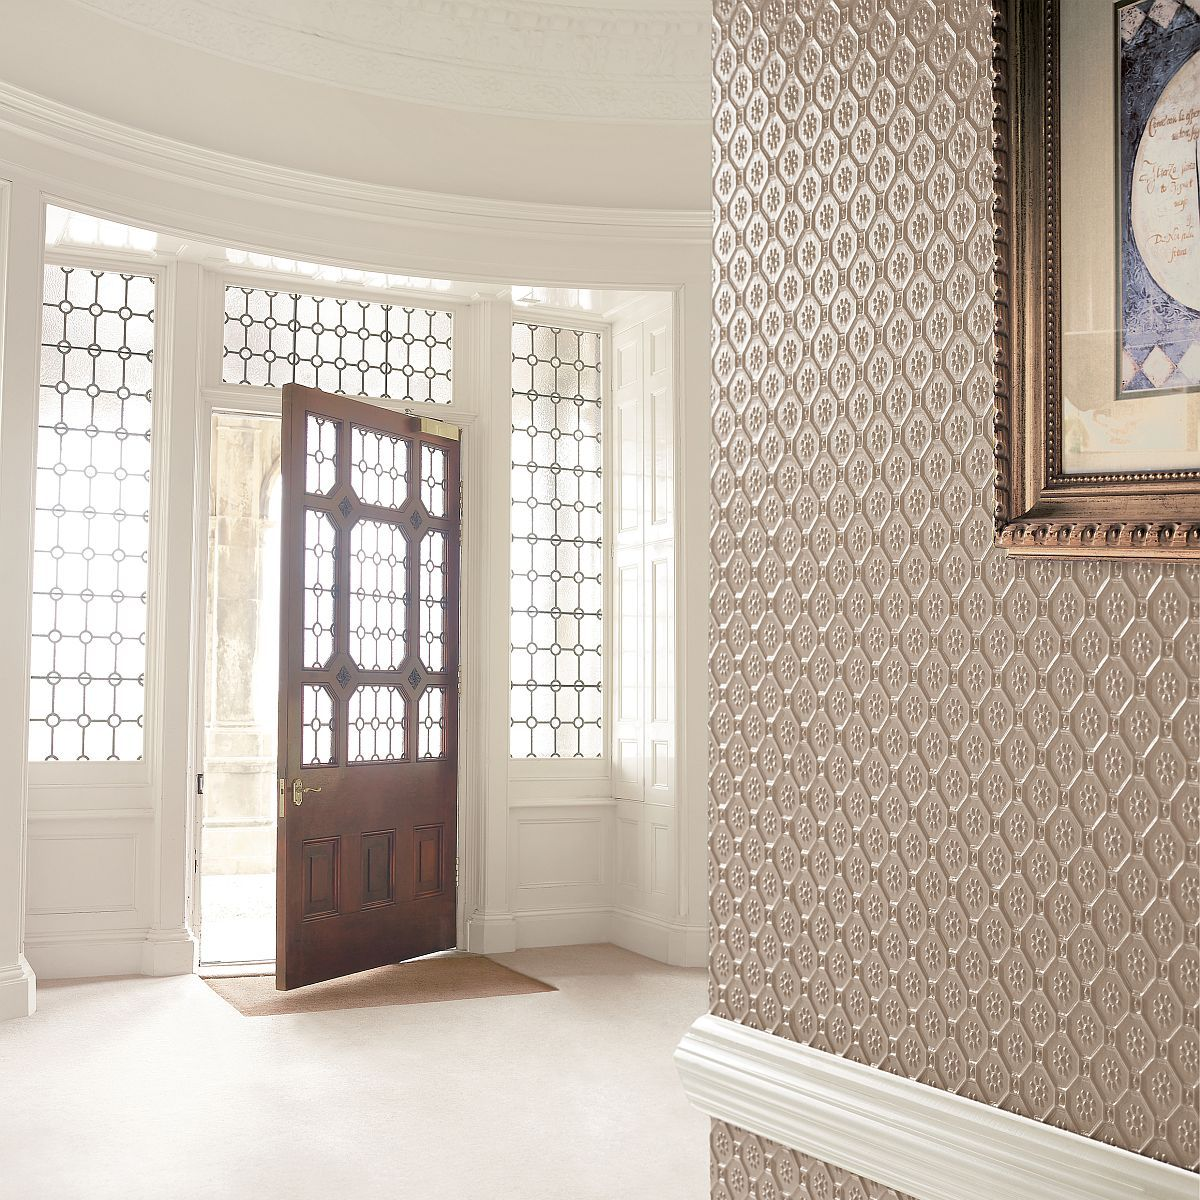 high-quality wallpapers and fabrics | lincrusta byzantine rd1954